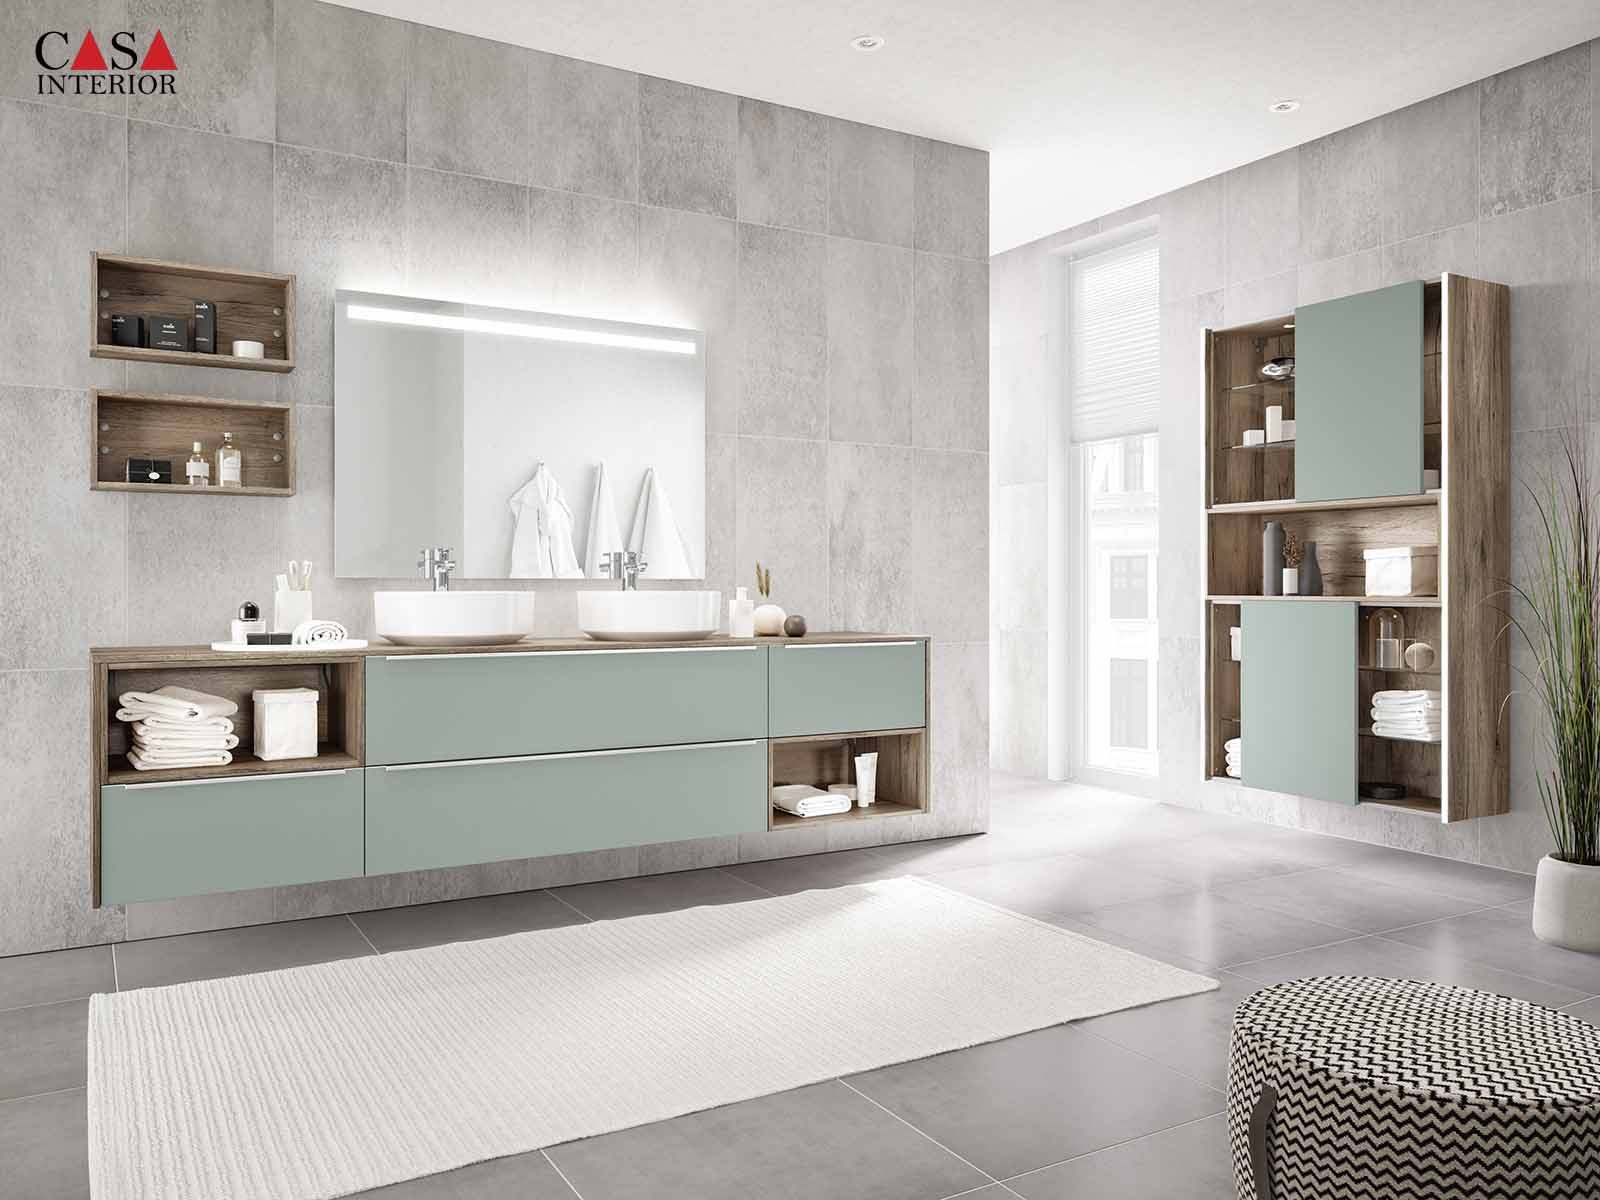 Küchentime Touch Lacquered laminate, aqua supermatt 337 - Bathroom